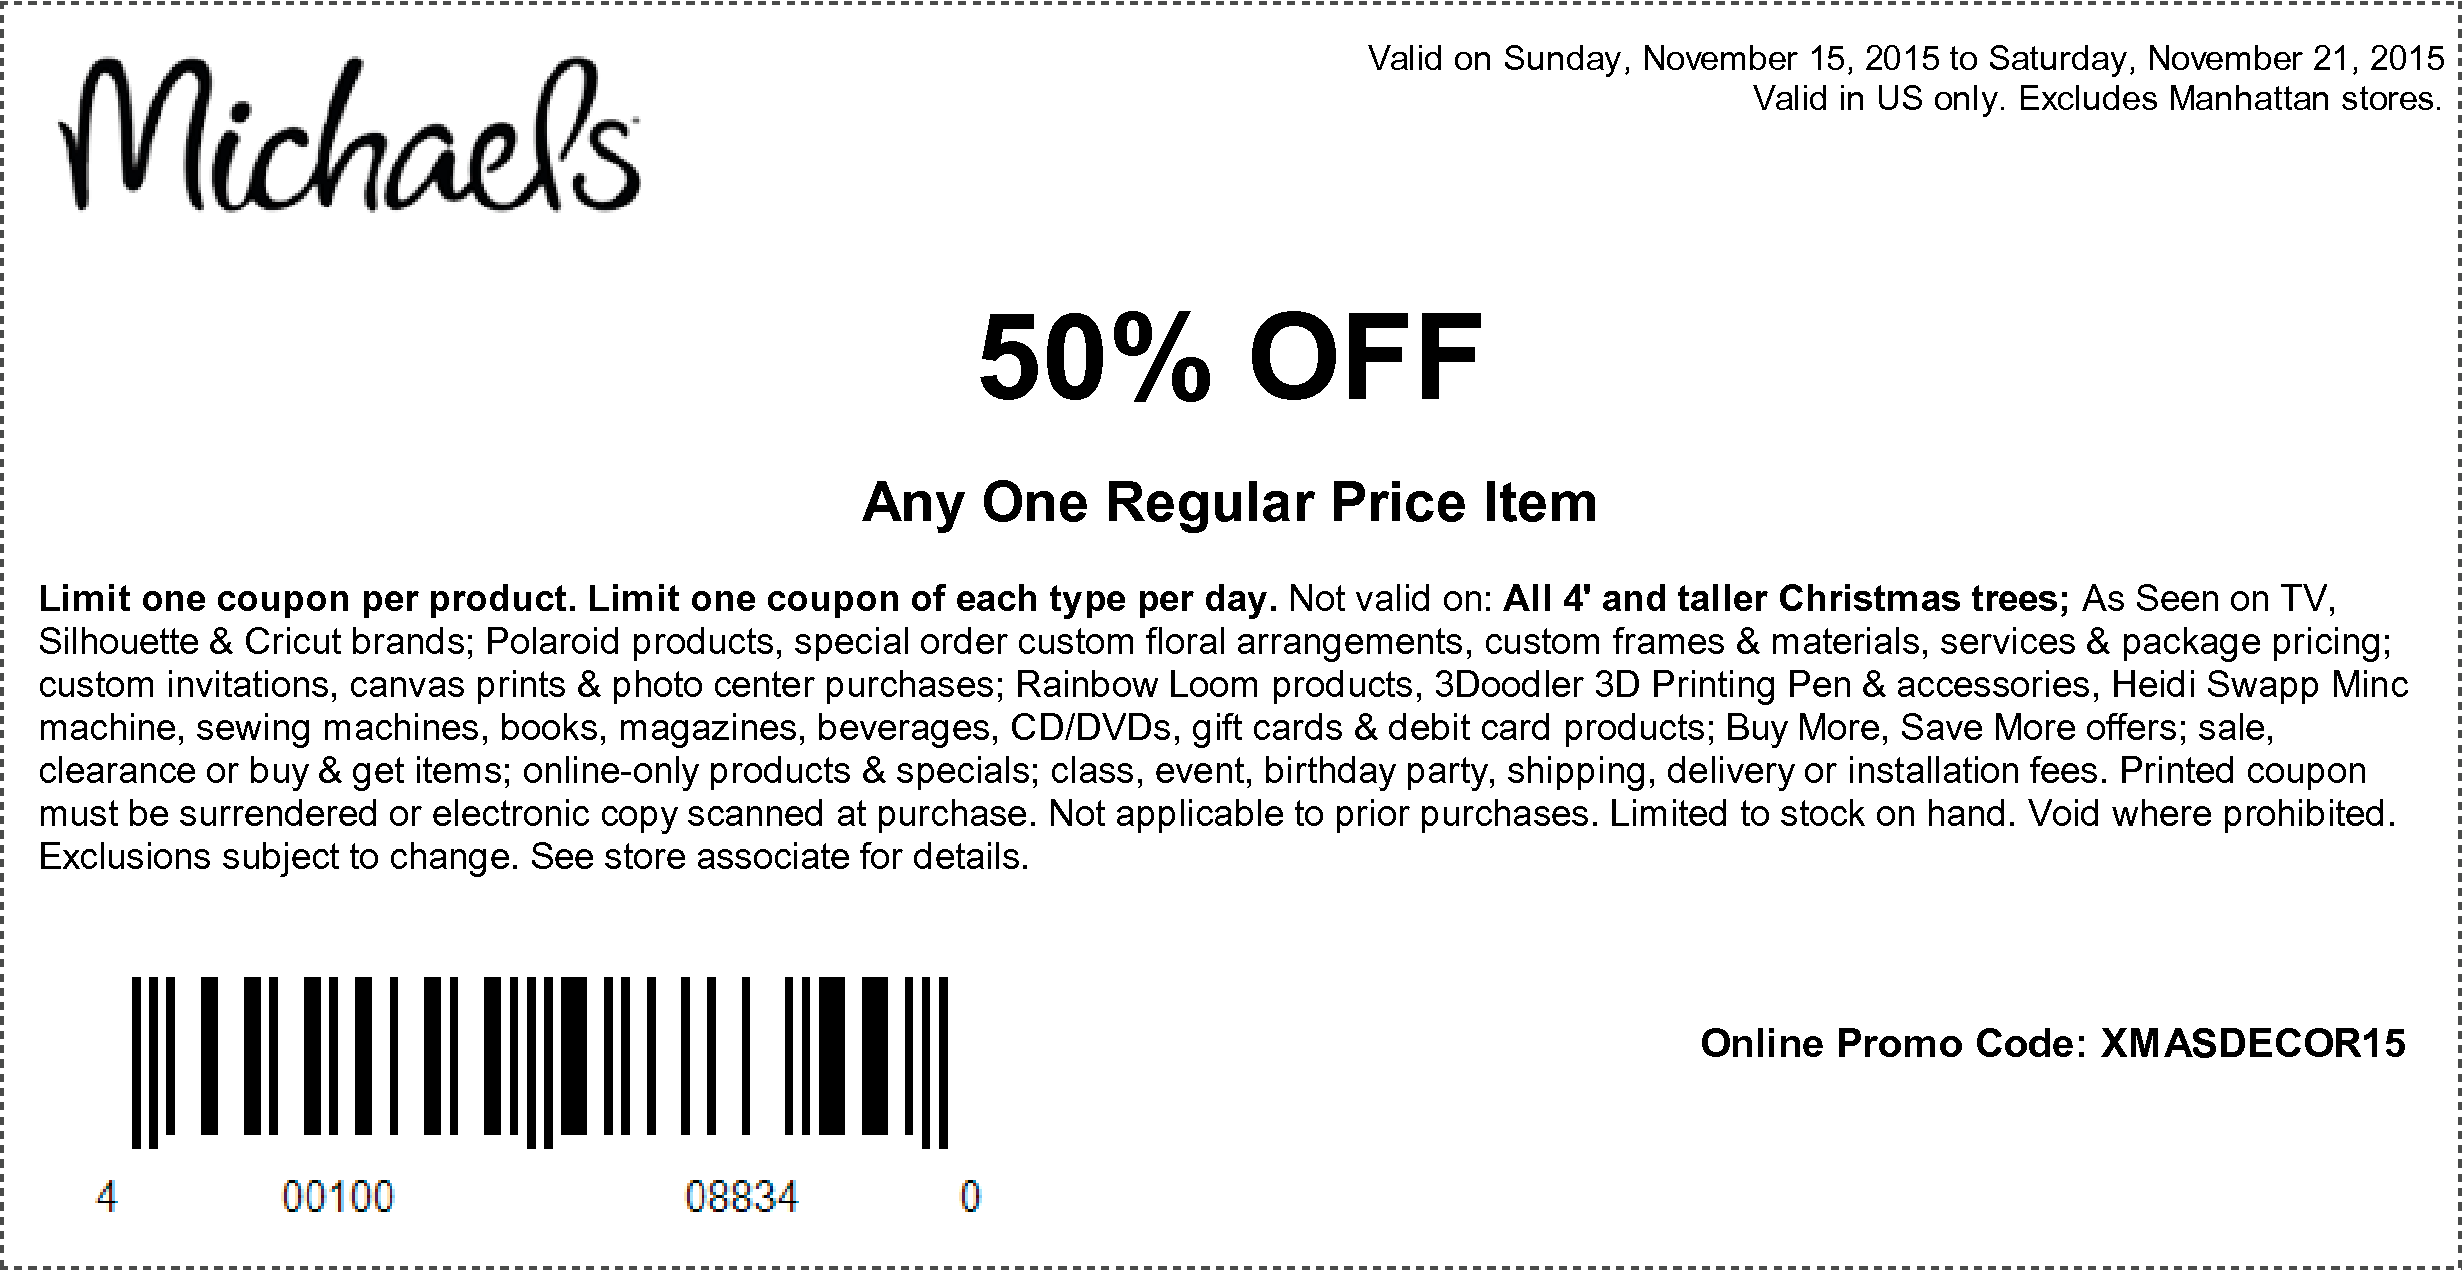 Michaels Coupon June 2017 50% off a single item at Michaels, or online via promo code XMASDECOR15